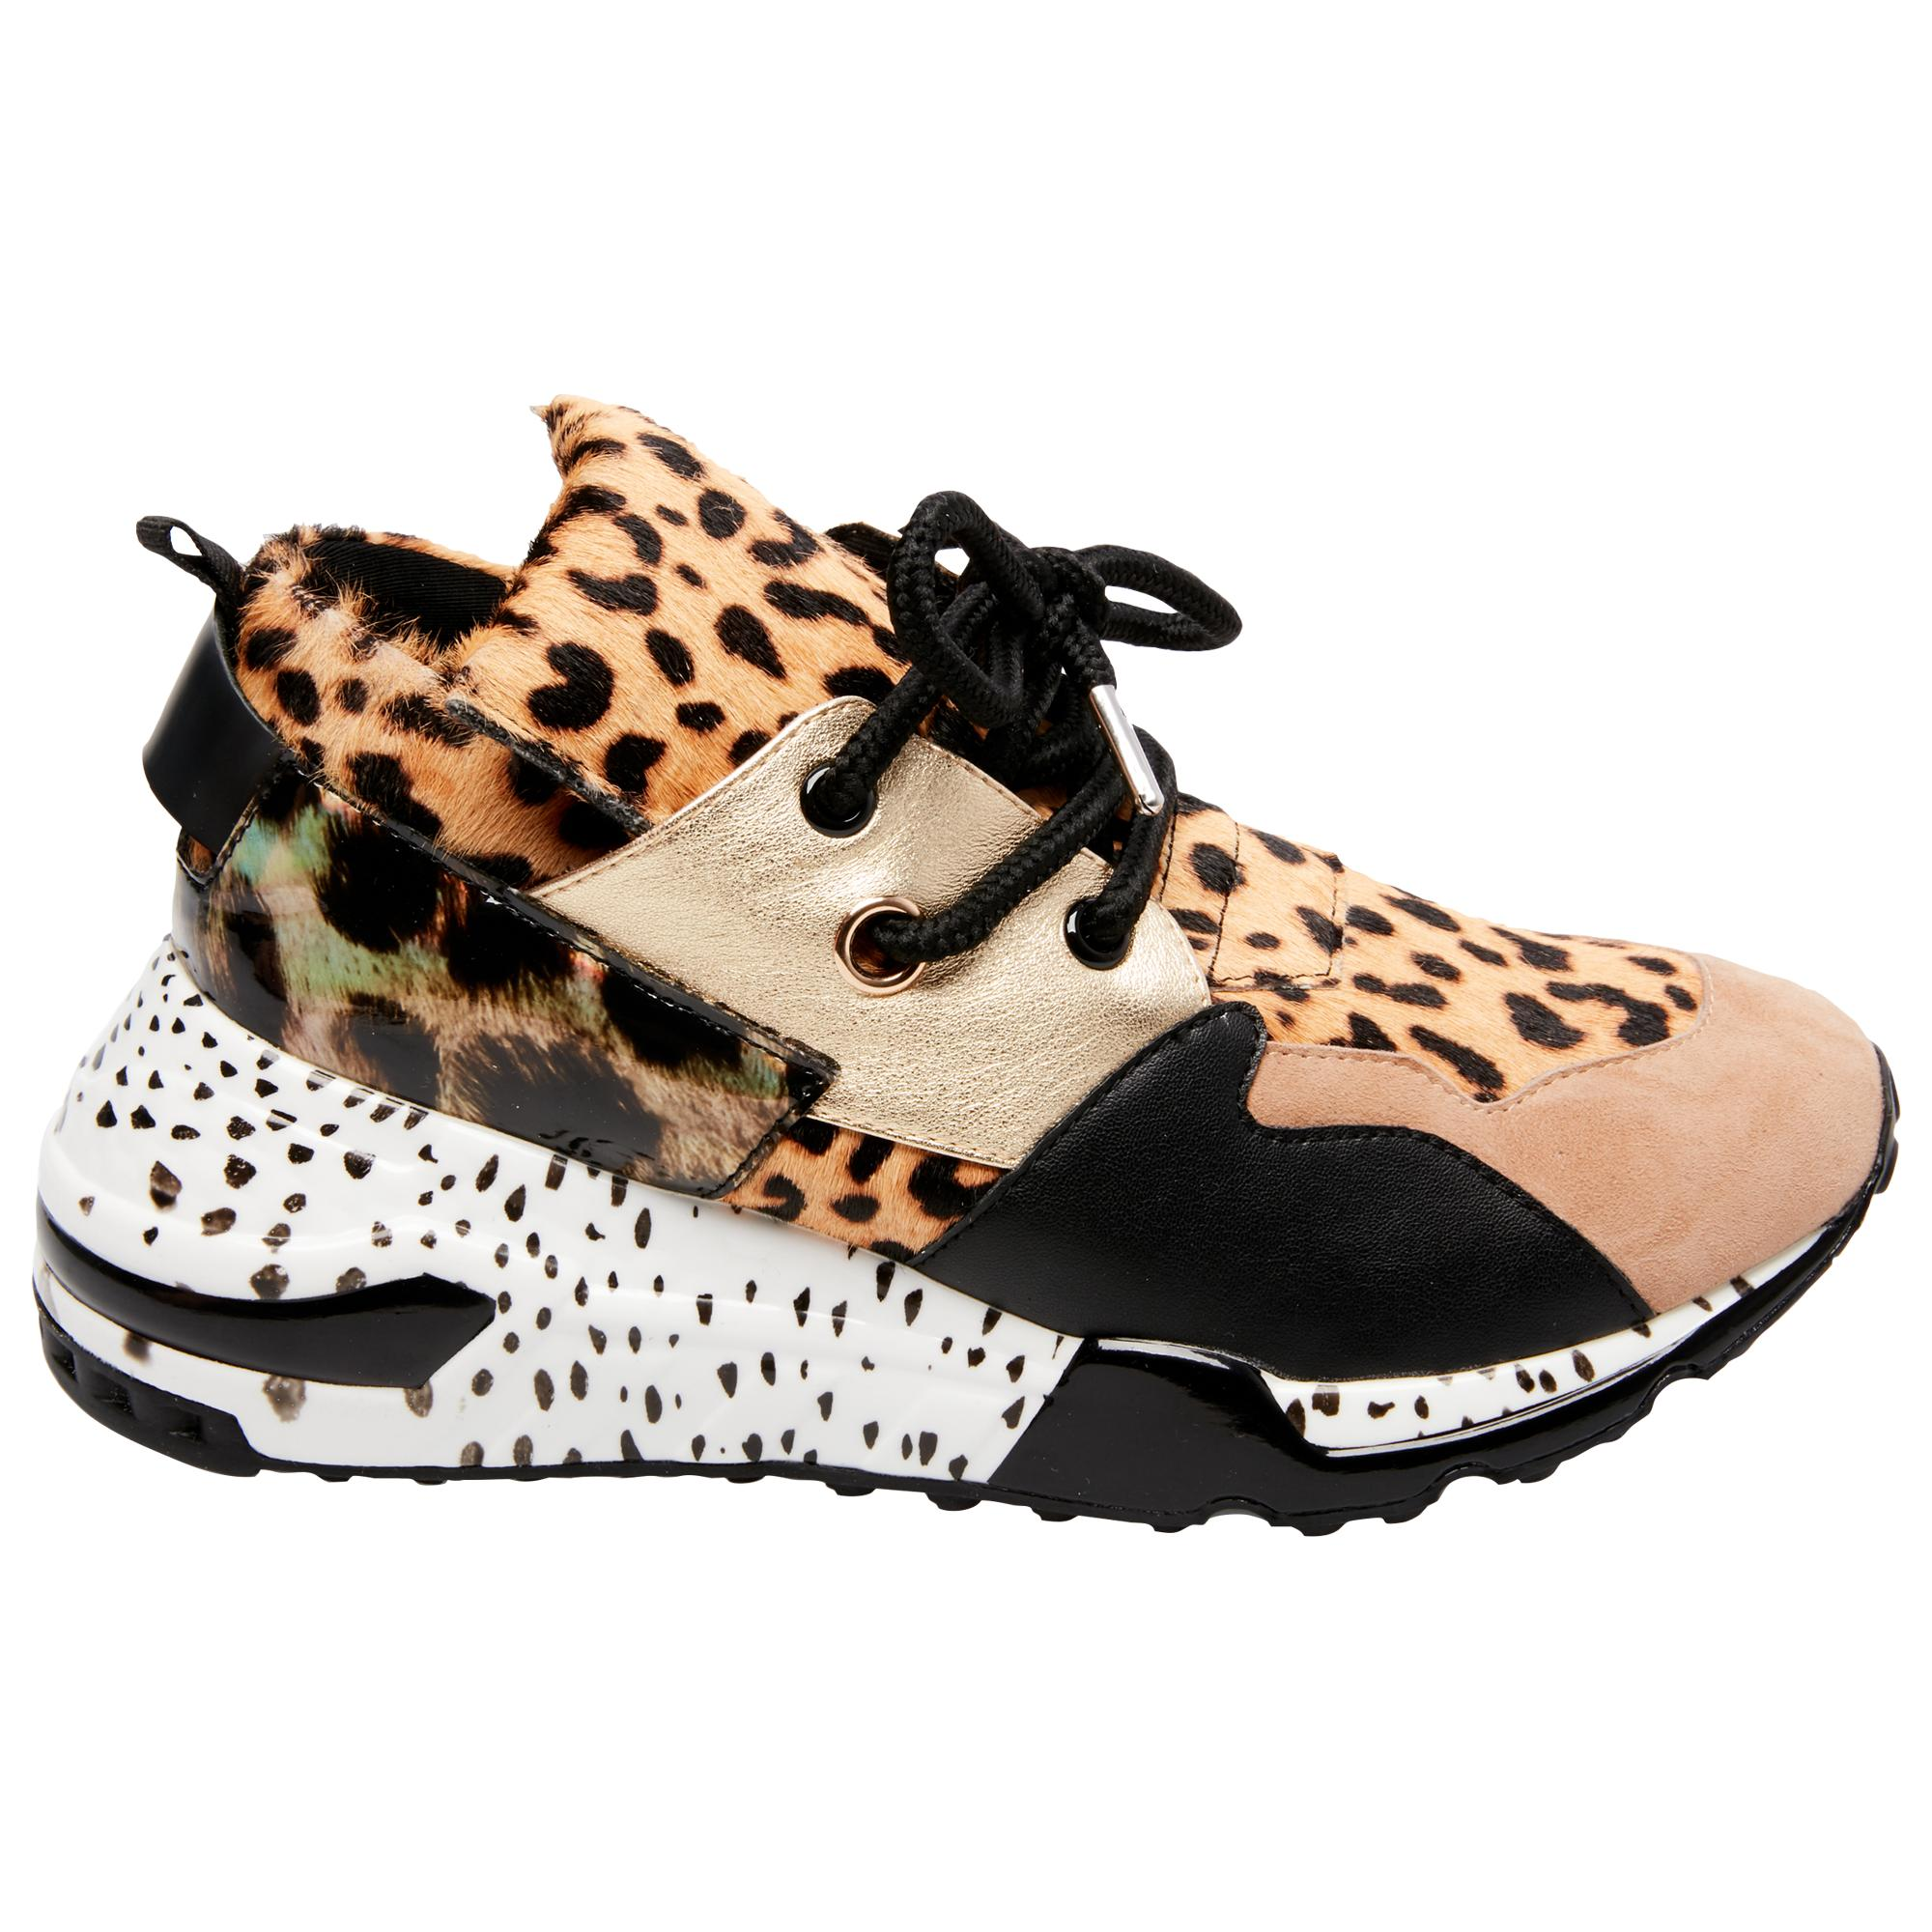 b406a76a505 Lyst - Steve Madden Cliff Animal Womens Shoes - Save 1%